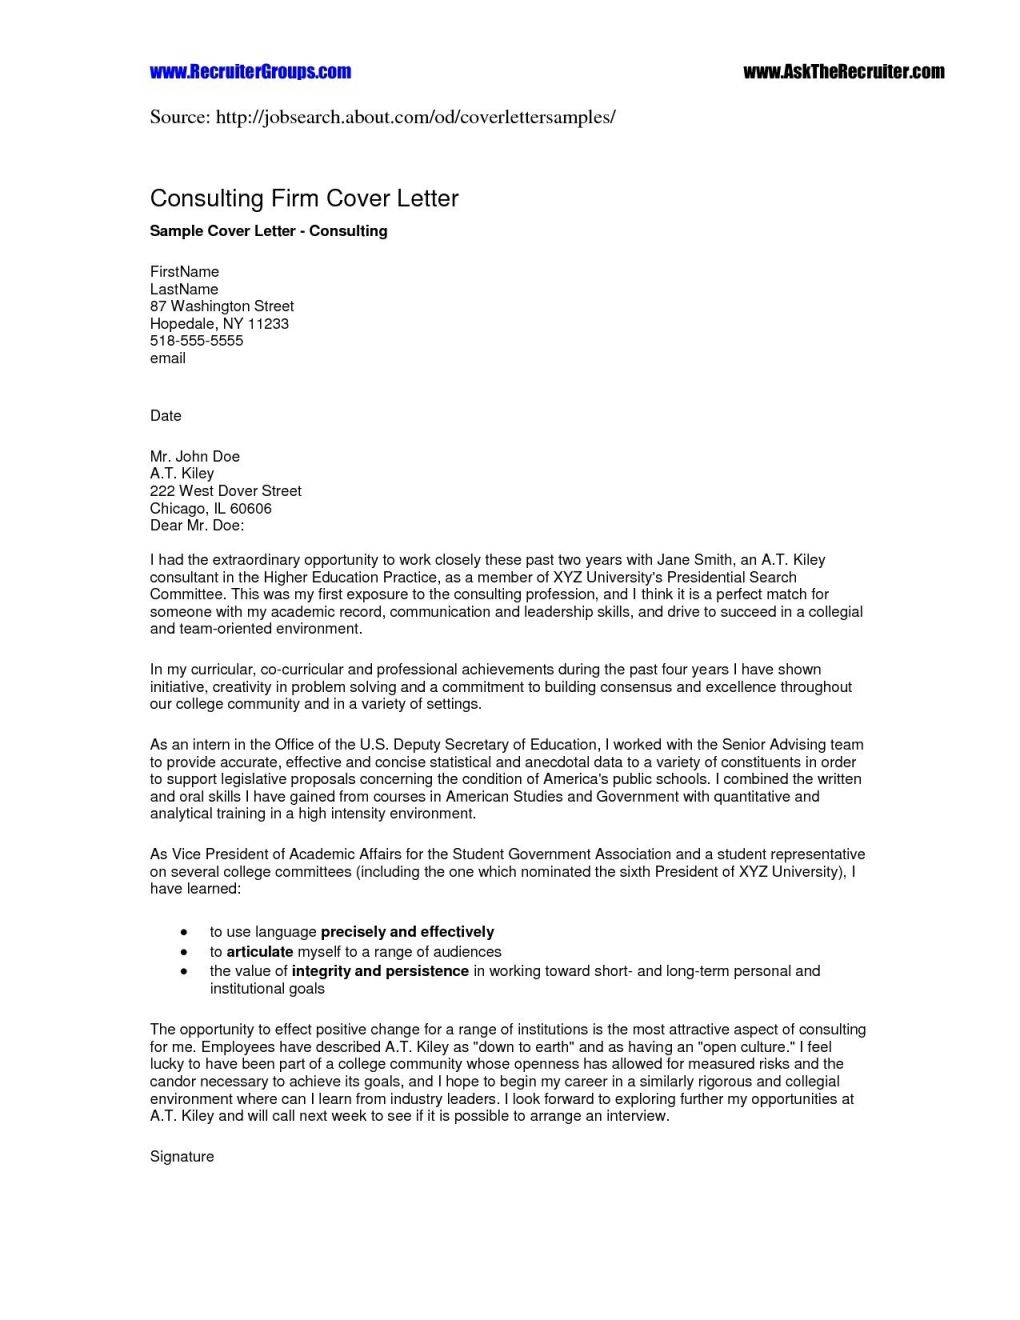 debt dispute letter template example-debt collection letter template popular debt collection dispute letter unique debt collector cover letter sample debt collection letters uj9 16l 20-o